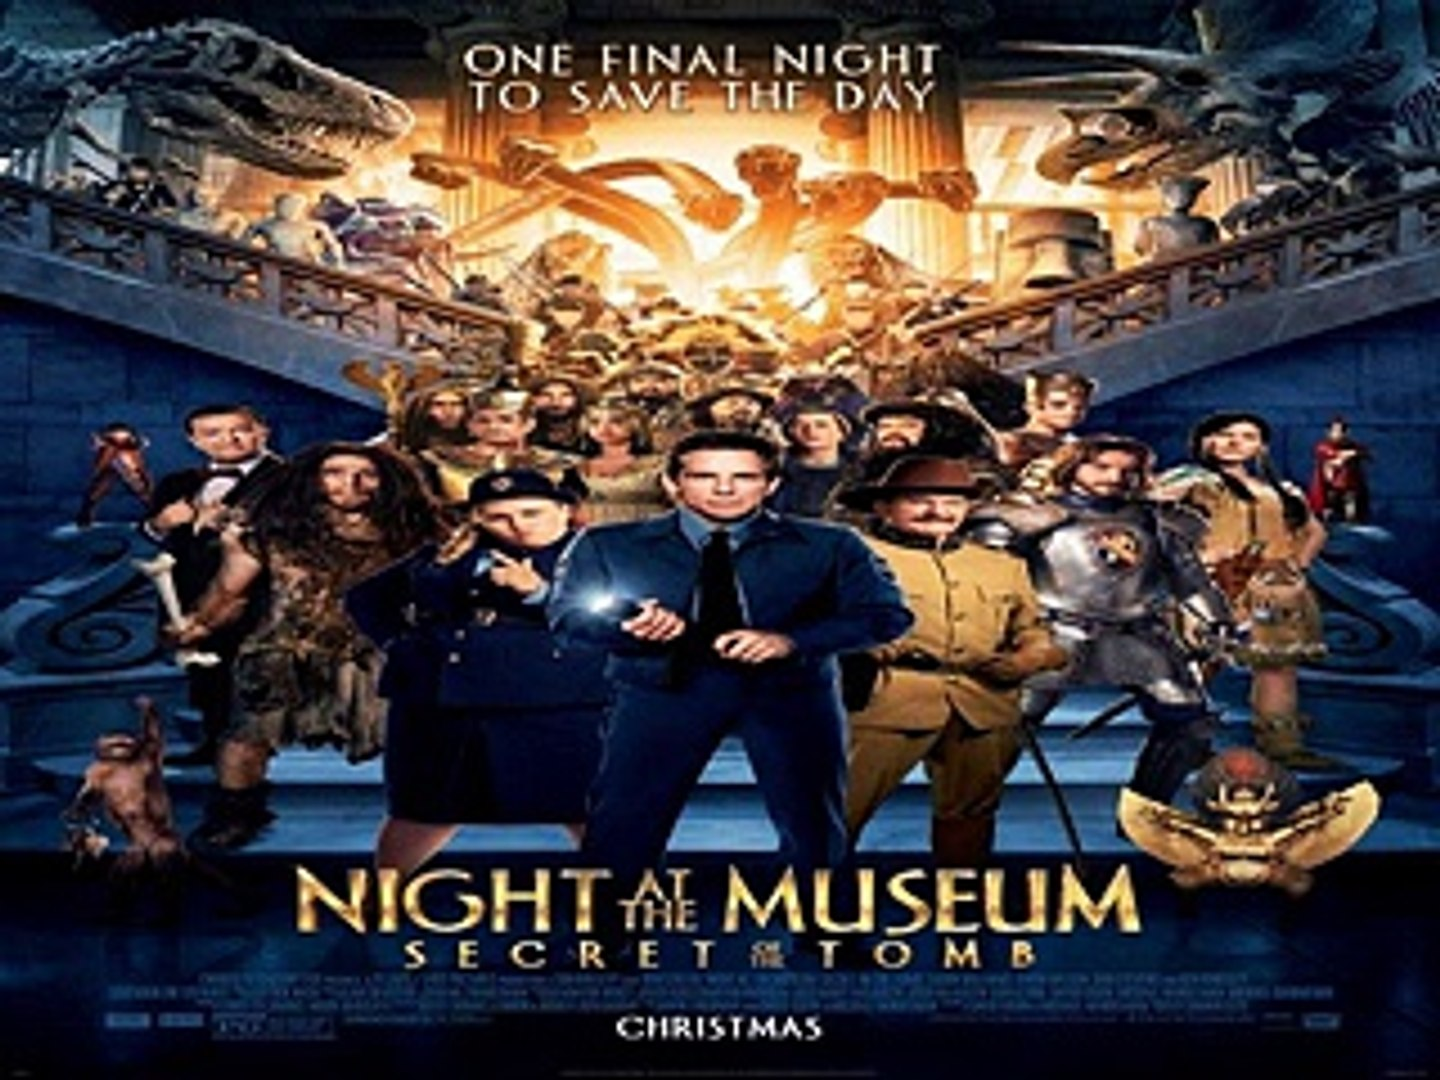 Watch Night at the Museum: Secret of the Tomb Online Full Movie (HD) owfeb